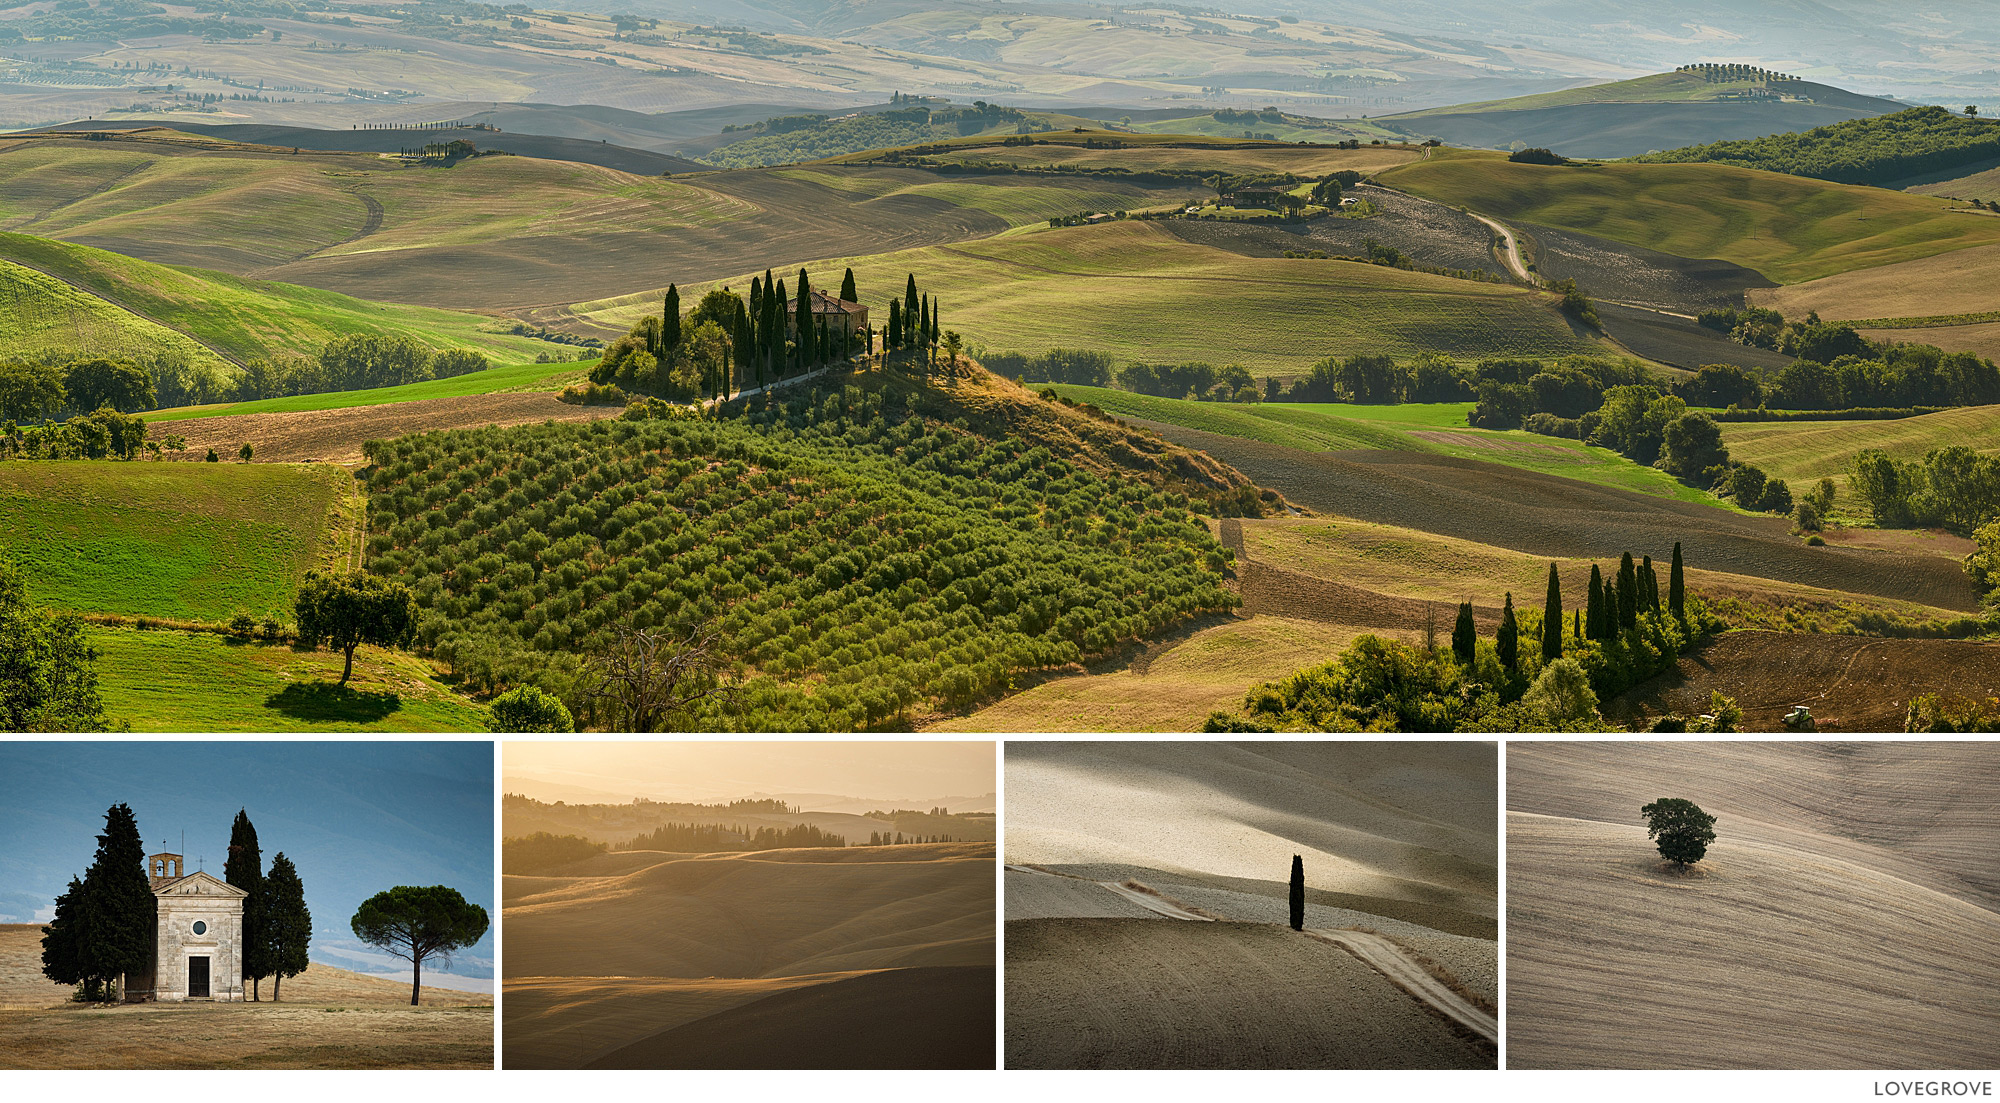 The countryside around Pienza.